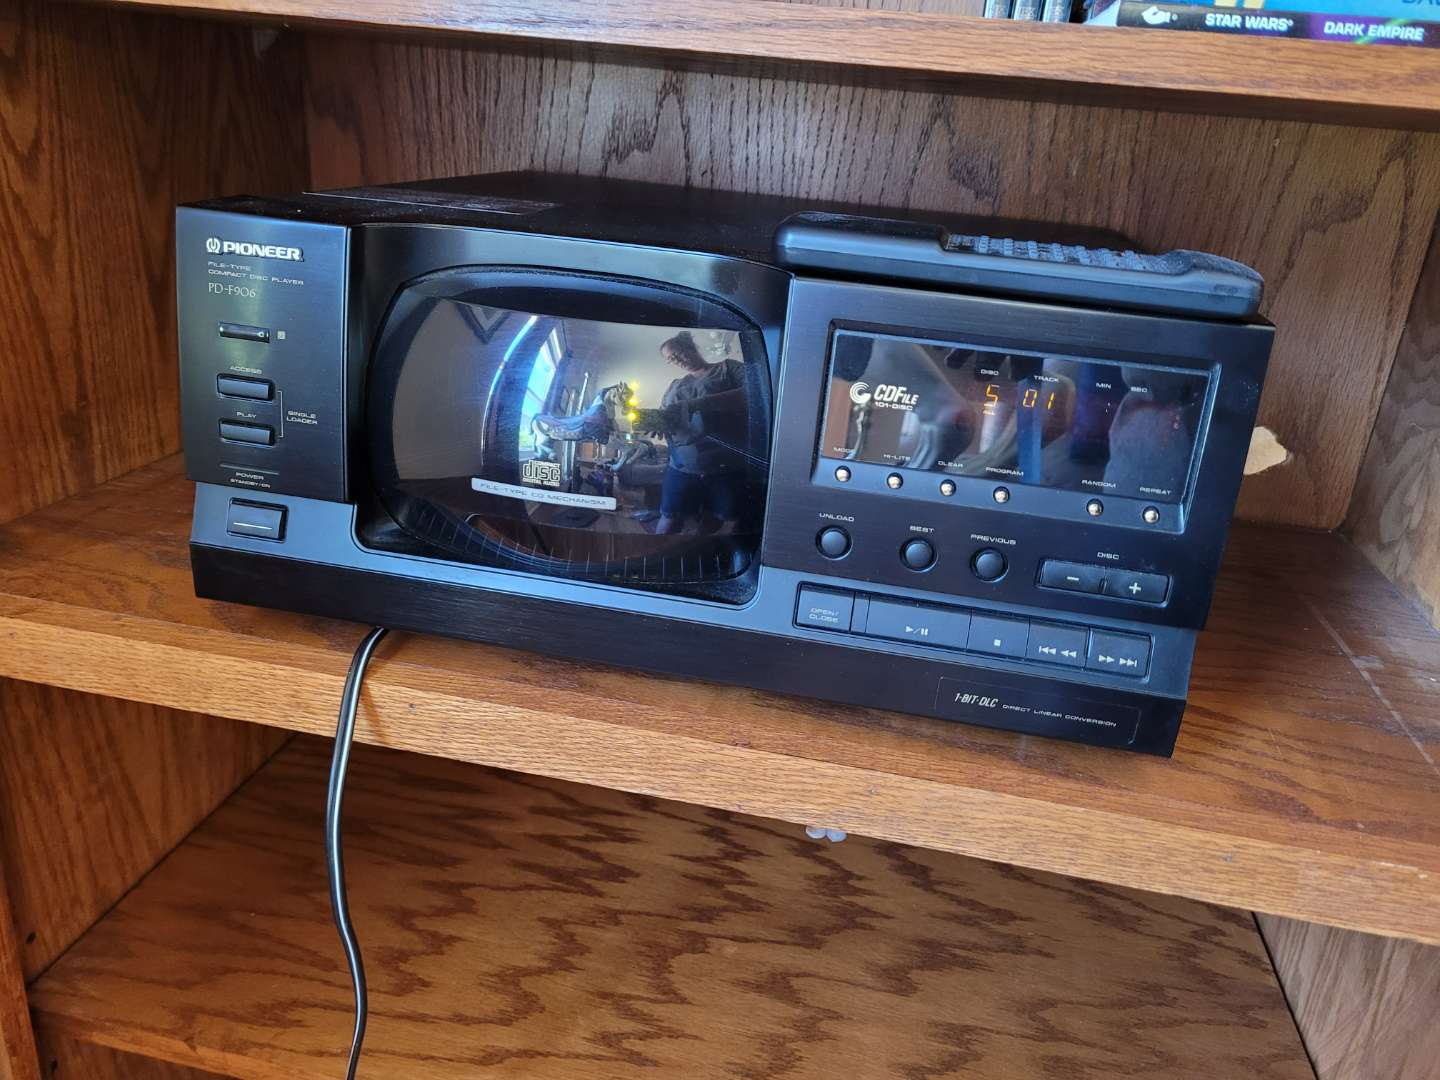 Lot # 267 Pioneer PD-F906 Disk Player w/ Remote - Holds 101 CDs